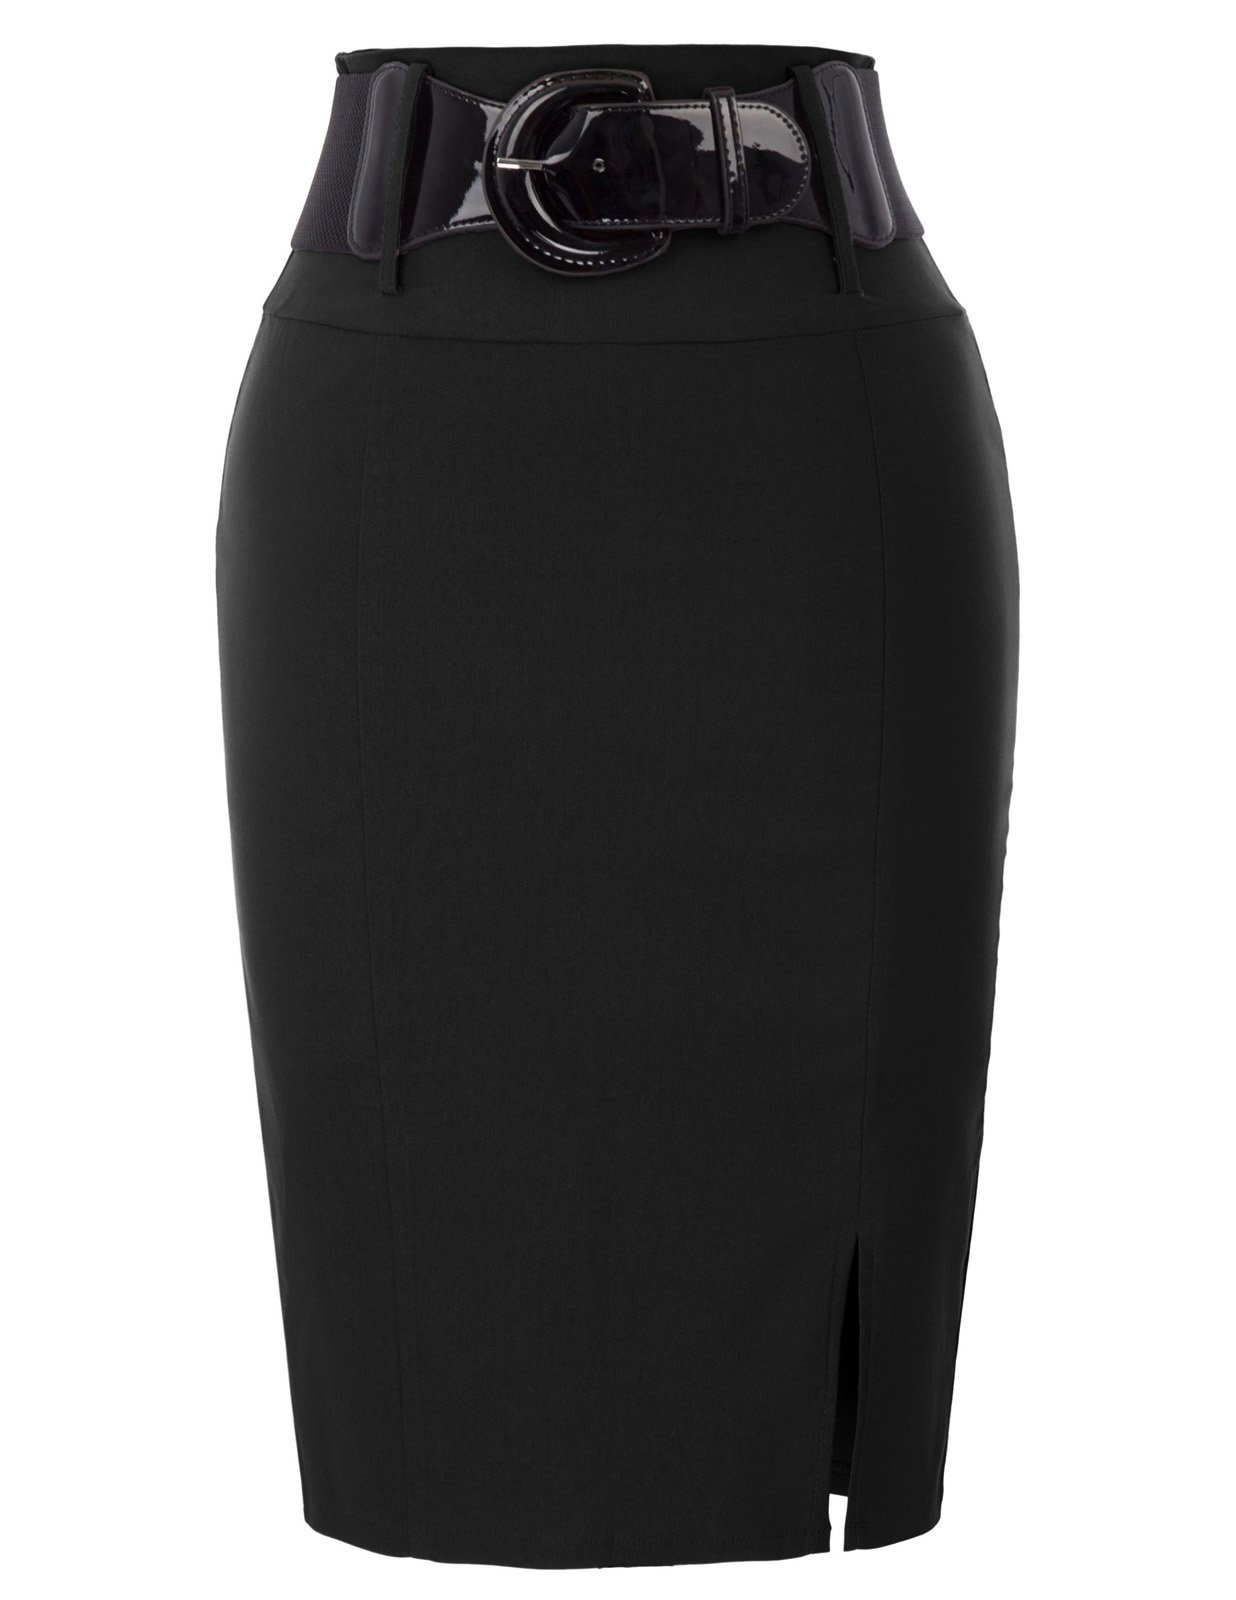 Belle Poque Plus Size Office Knee Length Skirts Black Size 2XL BP762-1